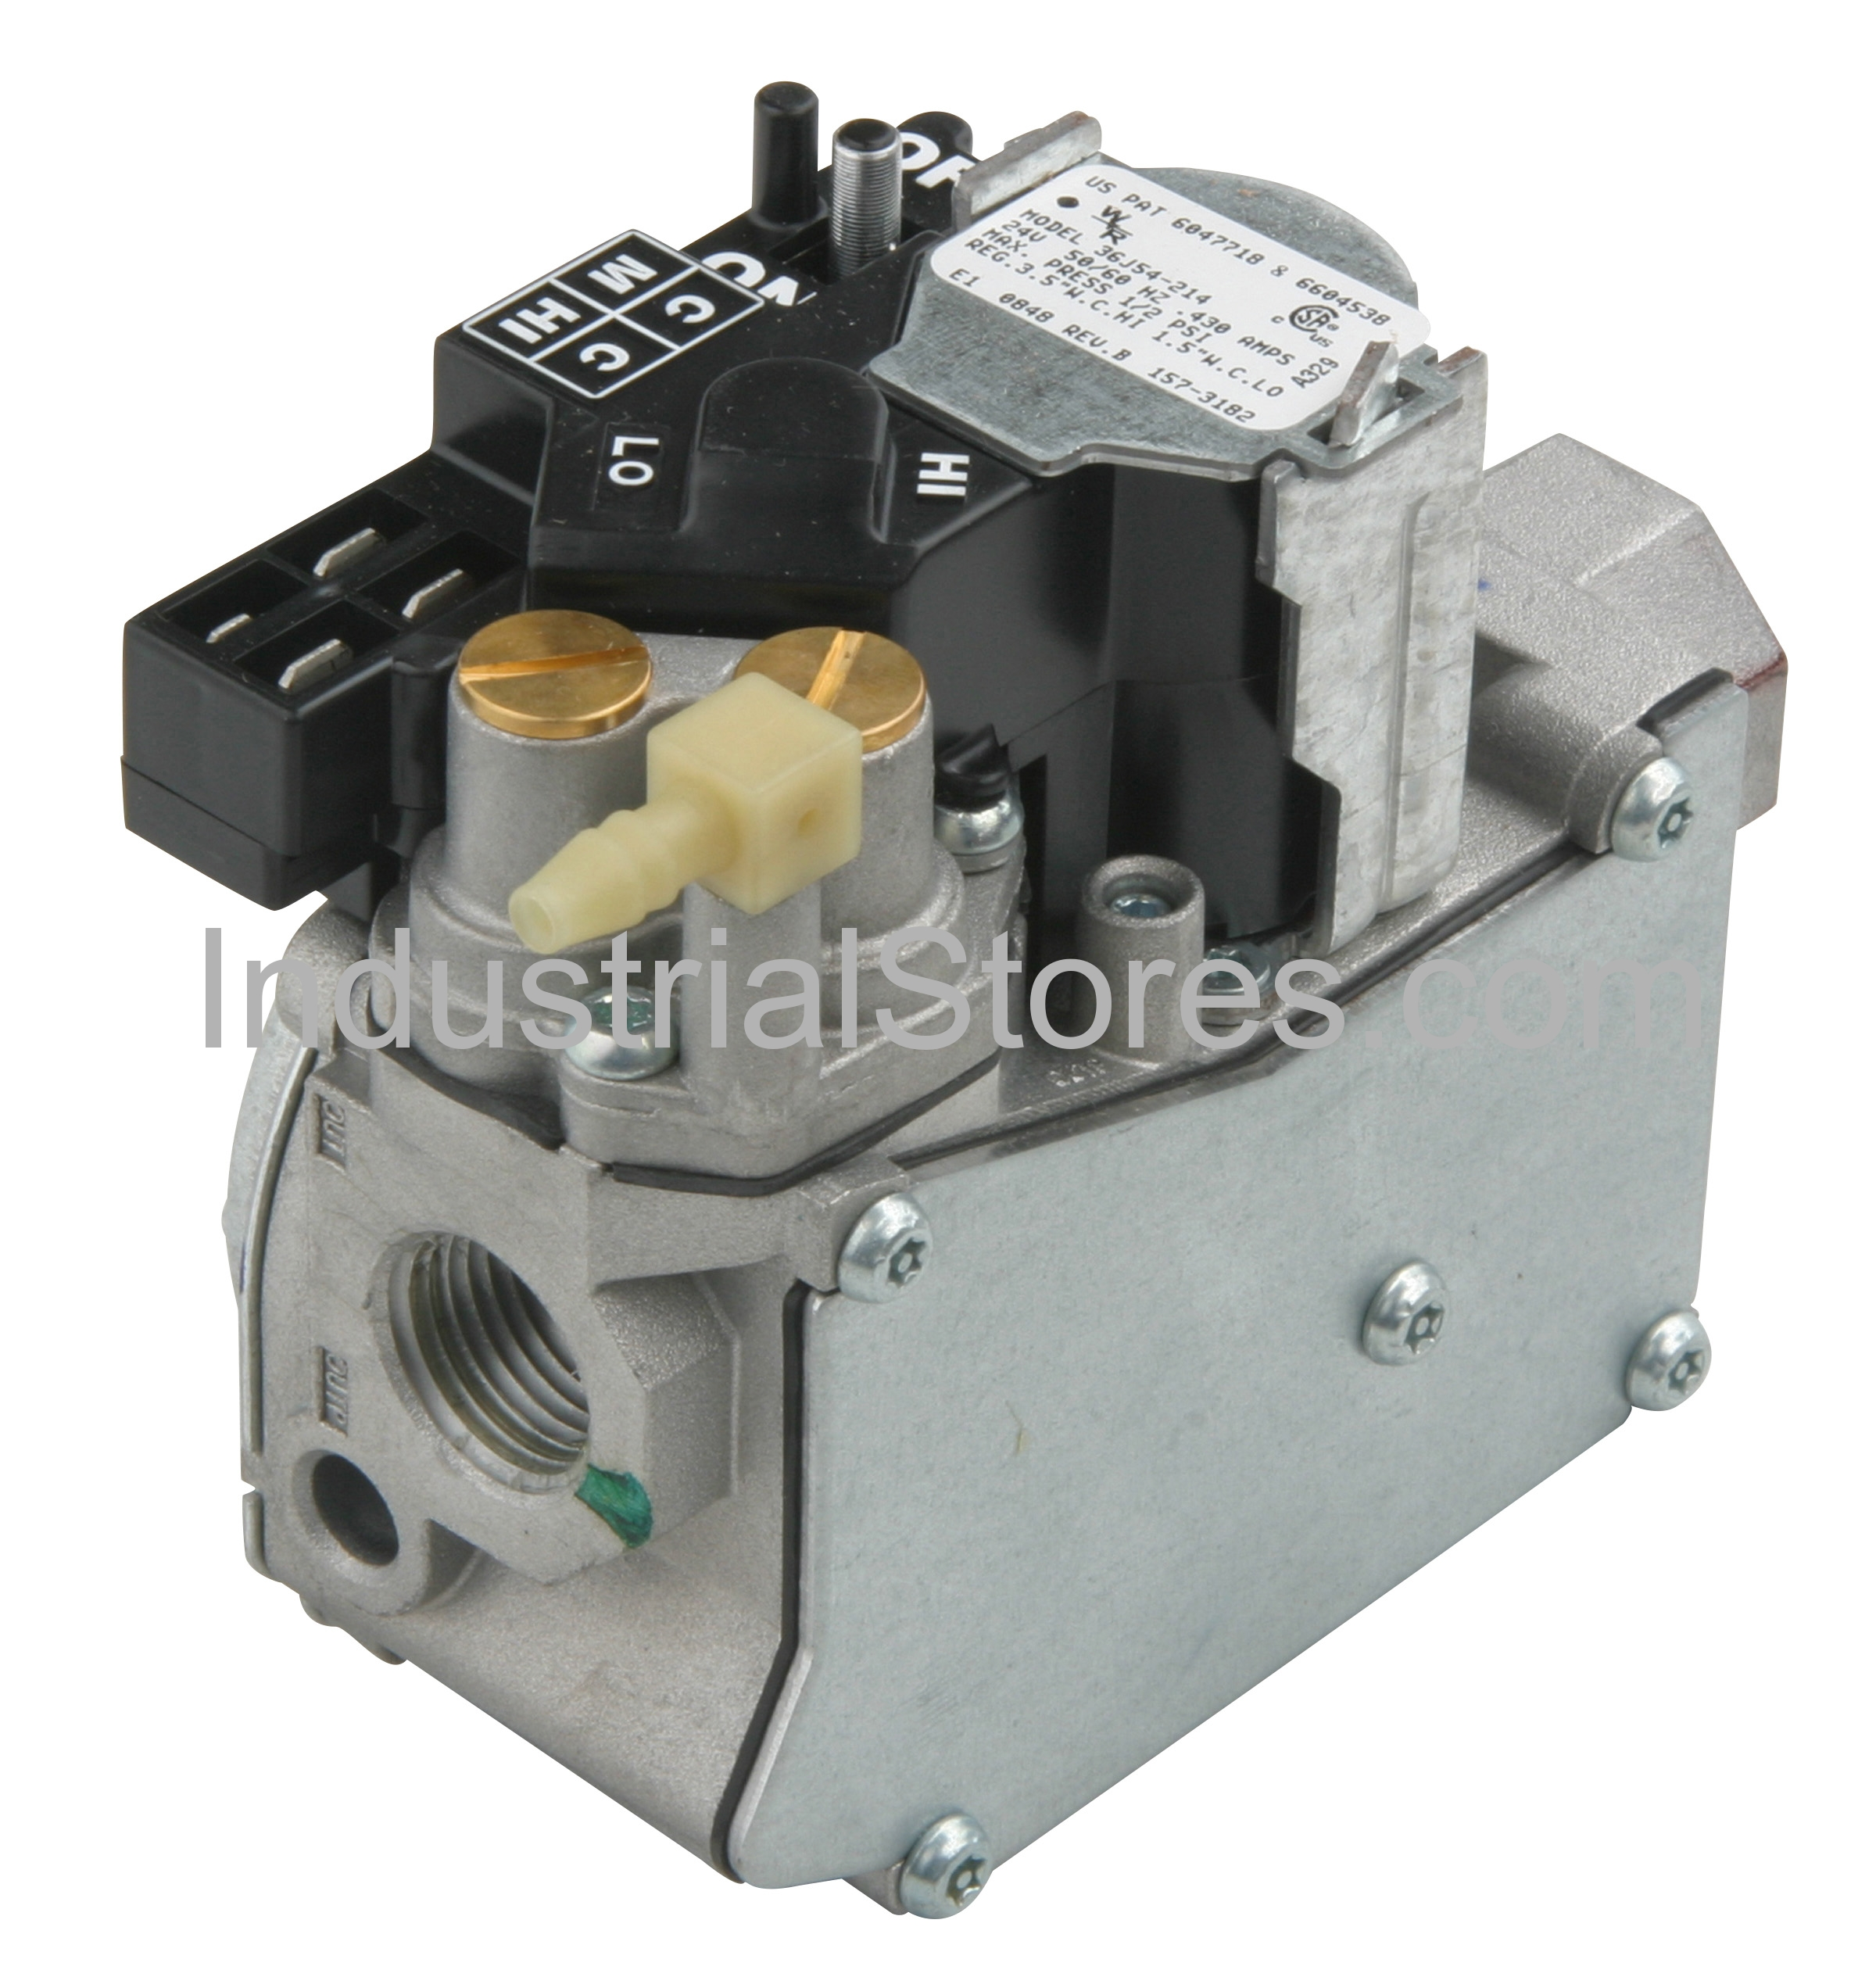 """White-Rodgers 36J54-214 Gas Valve Fast Opening 2-Stage 24V for Natural Gas or Liquid Propane 1/2"""" NPT"""